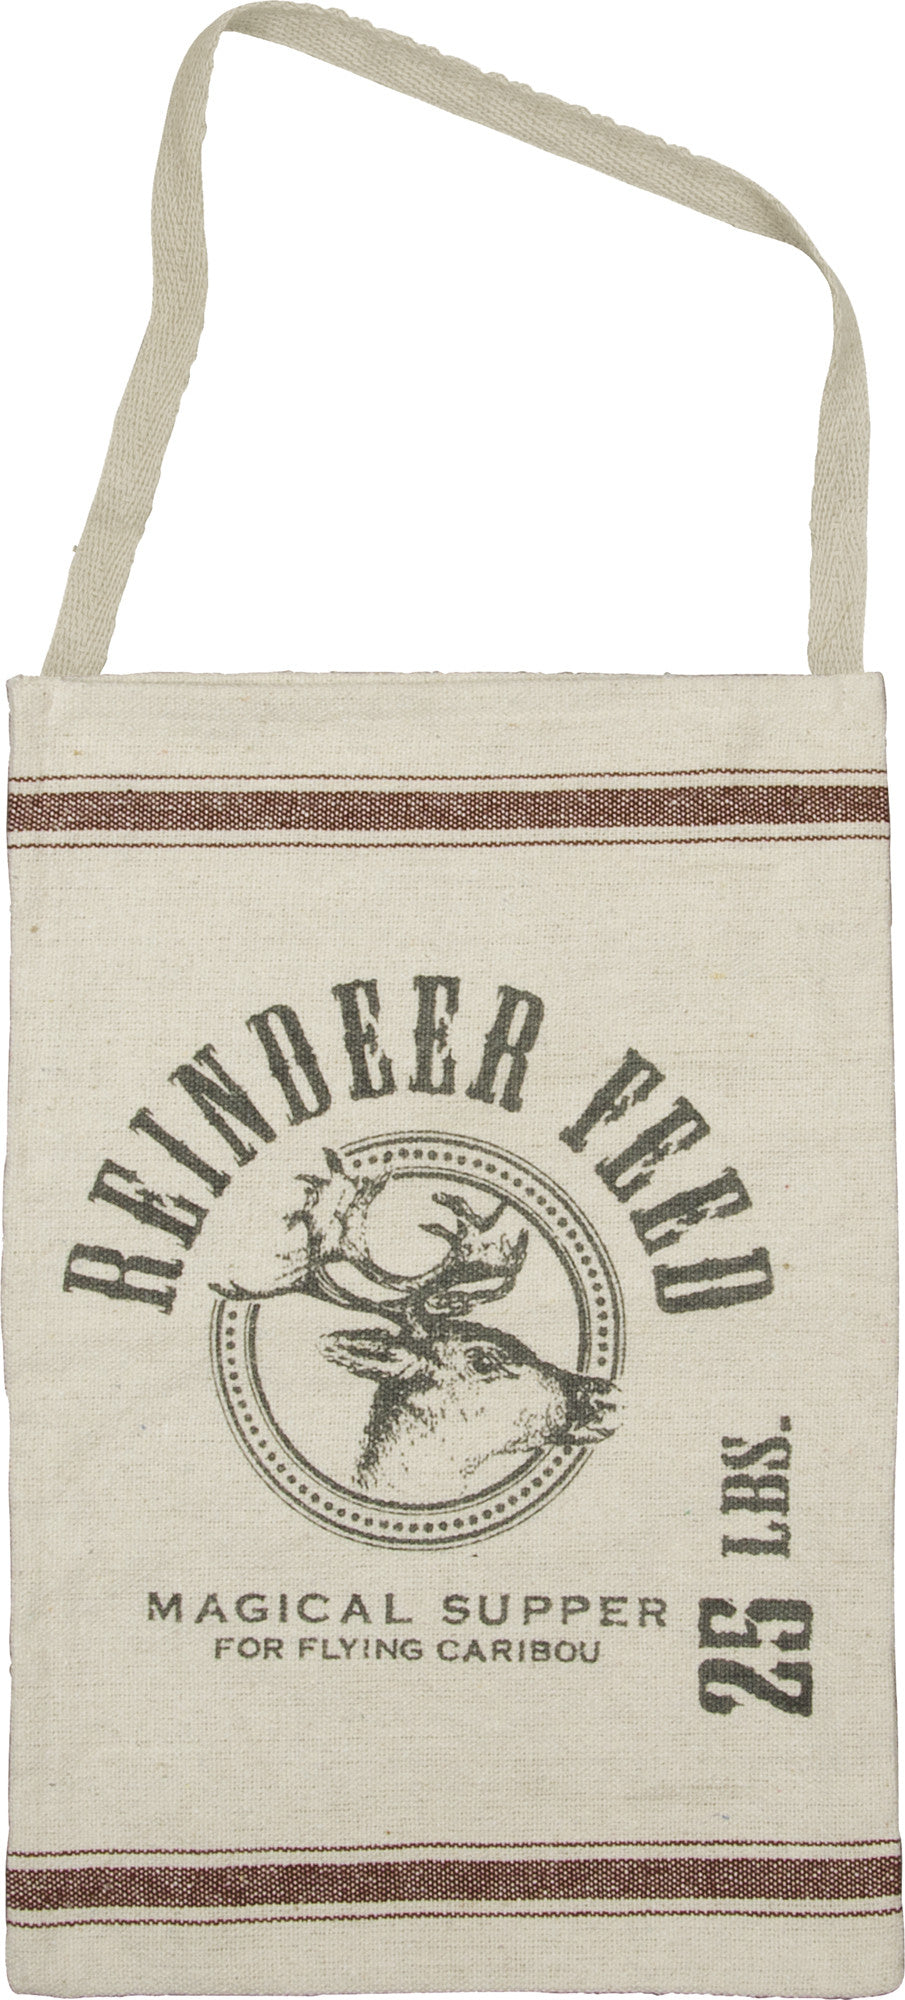 Reindeer Feed Bag - Magical Supper for Flying Caribou